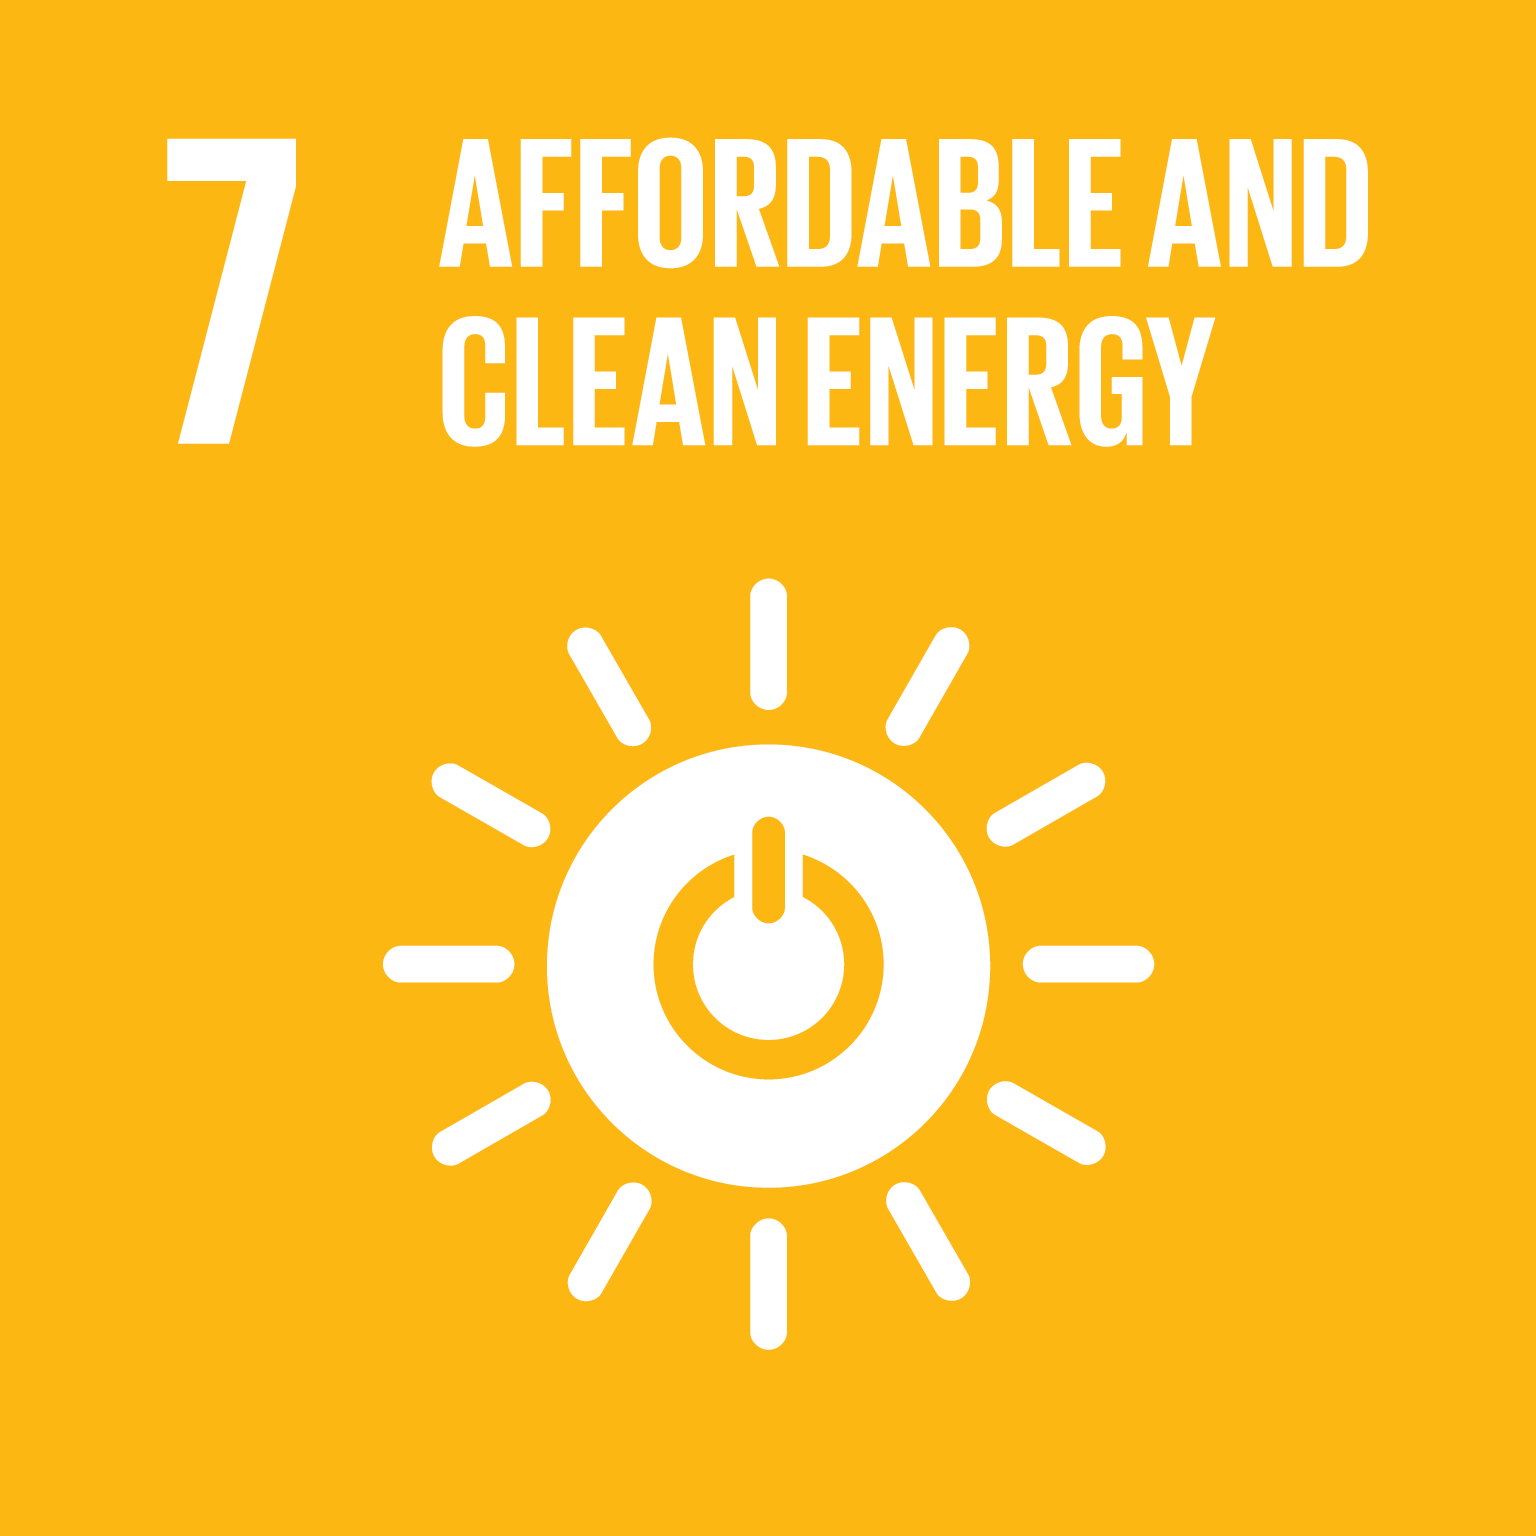 SDG Goal 7 'Affordable and clean energy' © UN